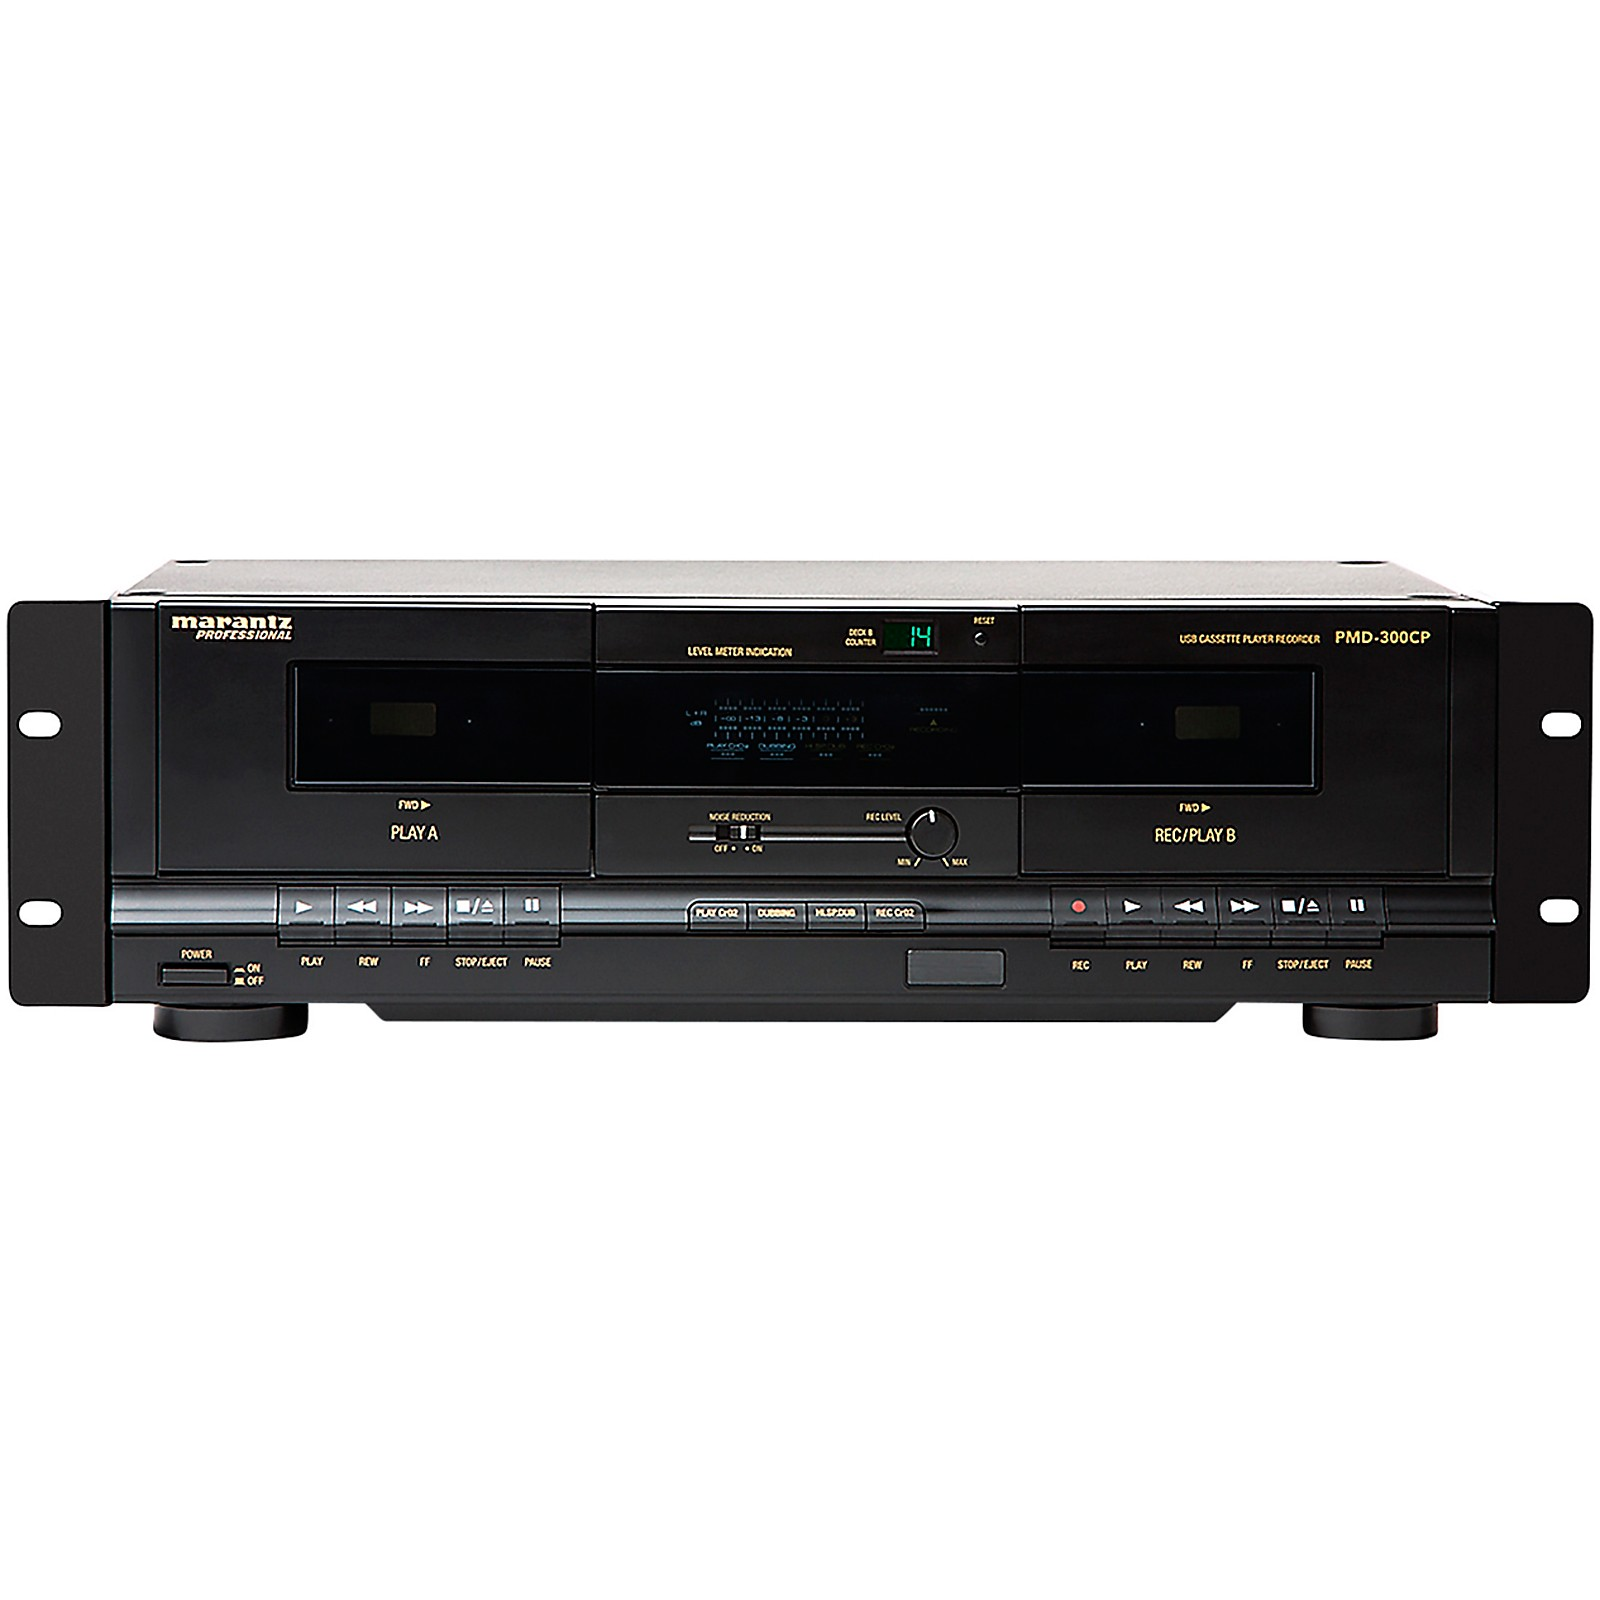 Marantz Professional PMD-300CP Dual Cassette Recorder/Player with USB